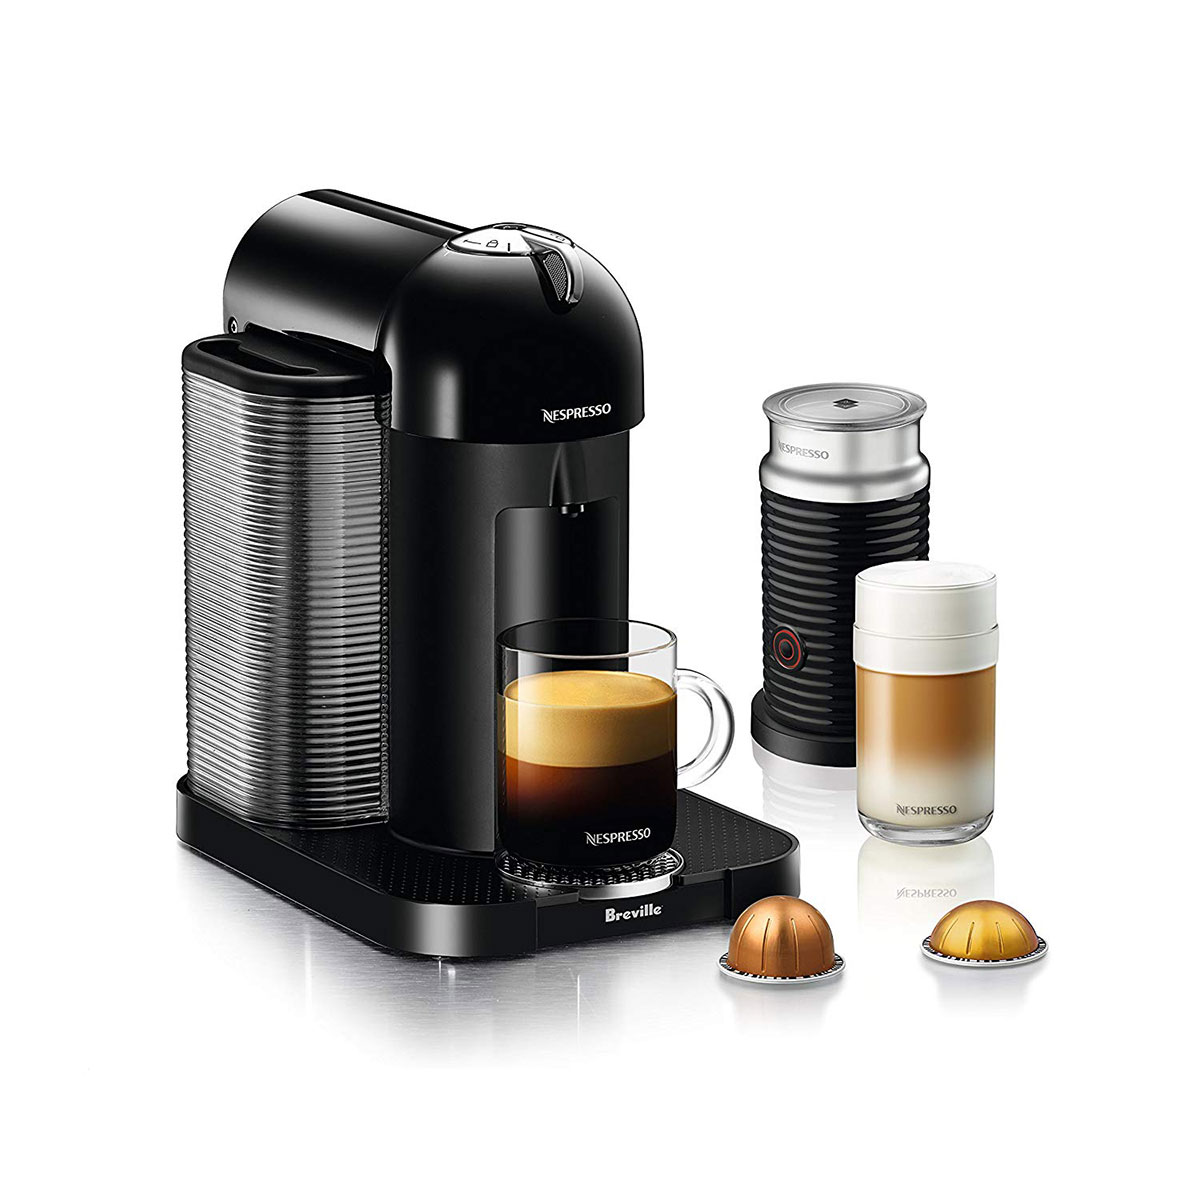 Birthday or Christmas Gifts for Brother: Breville Nespresso Machine